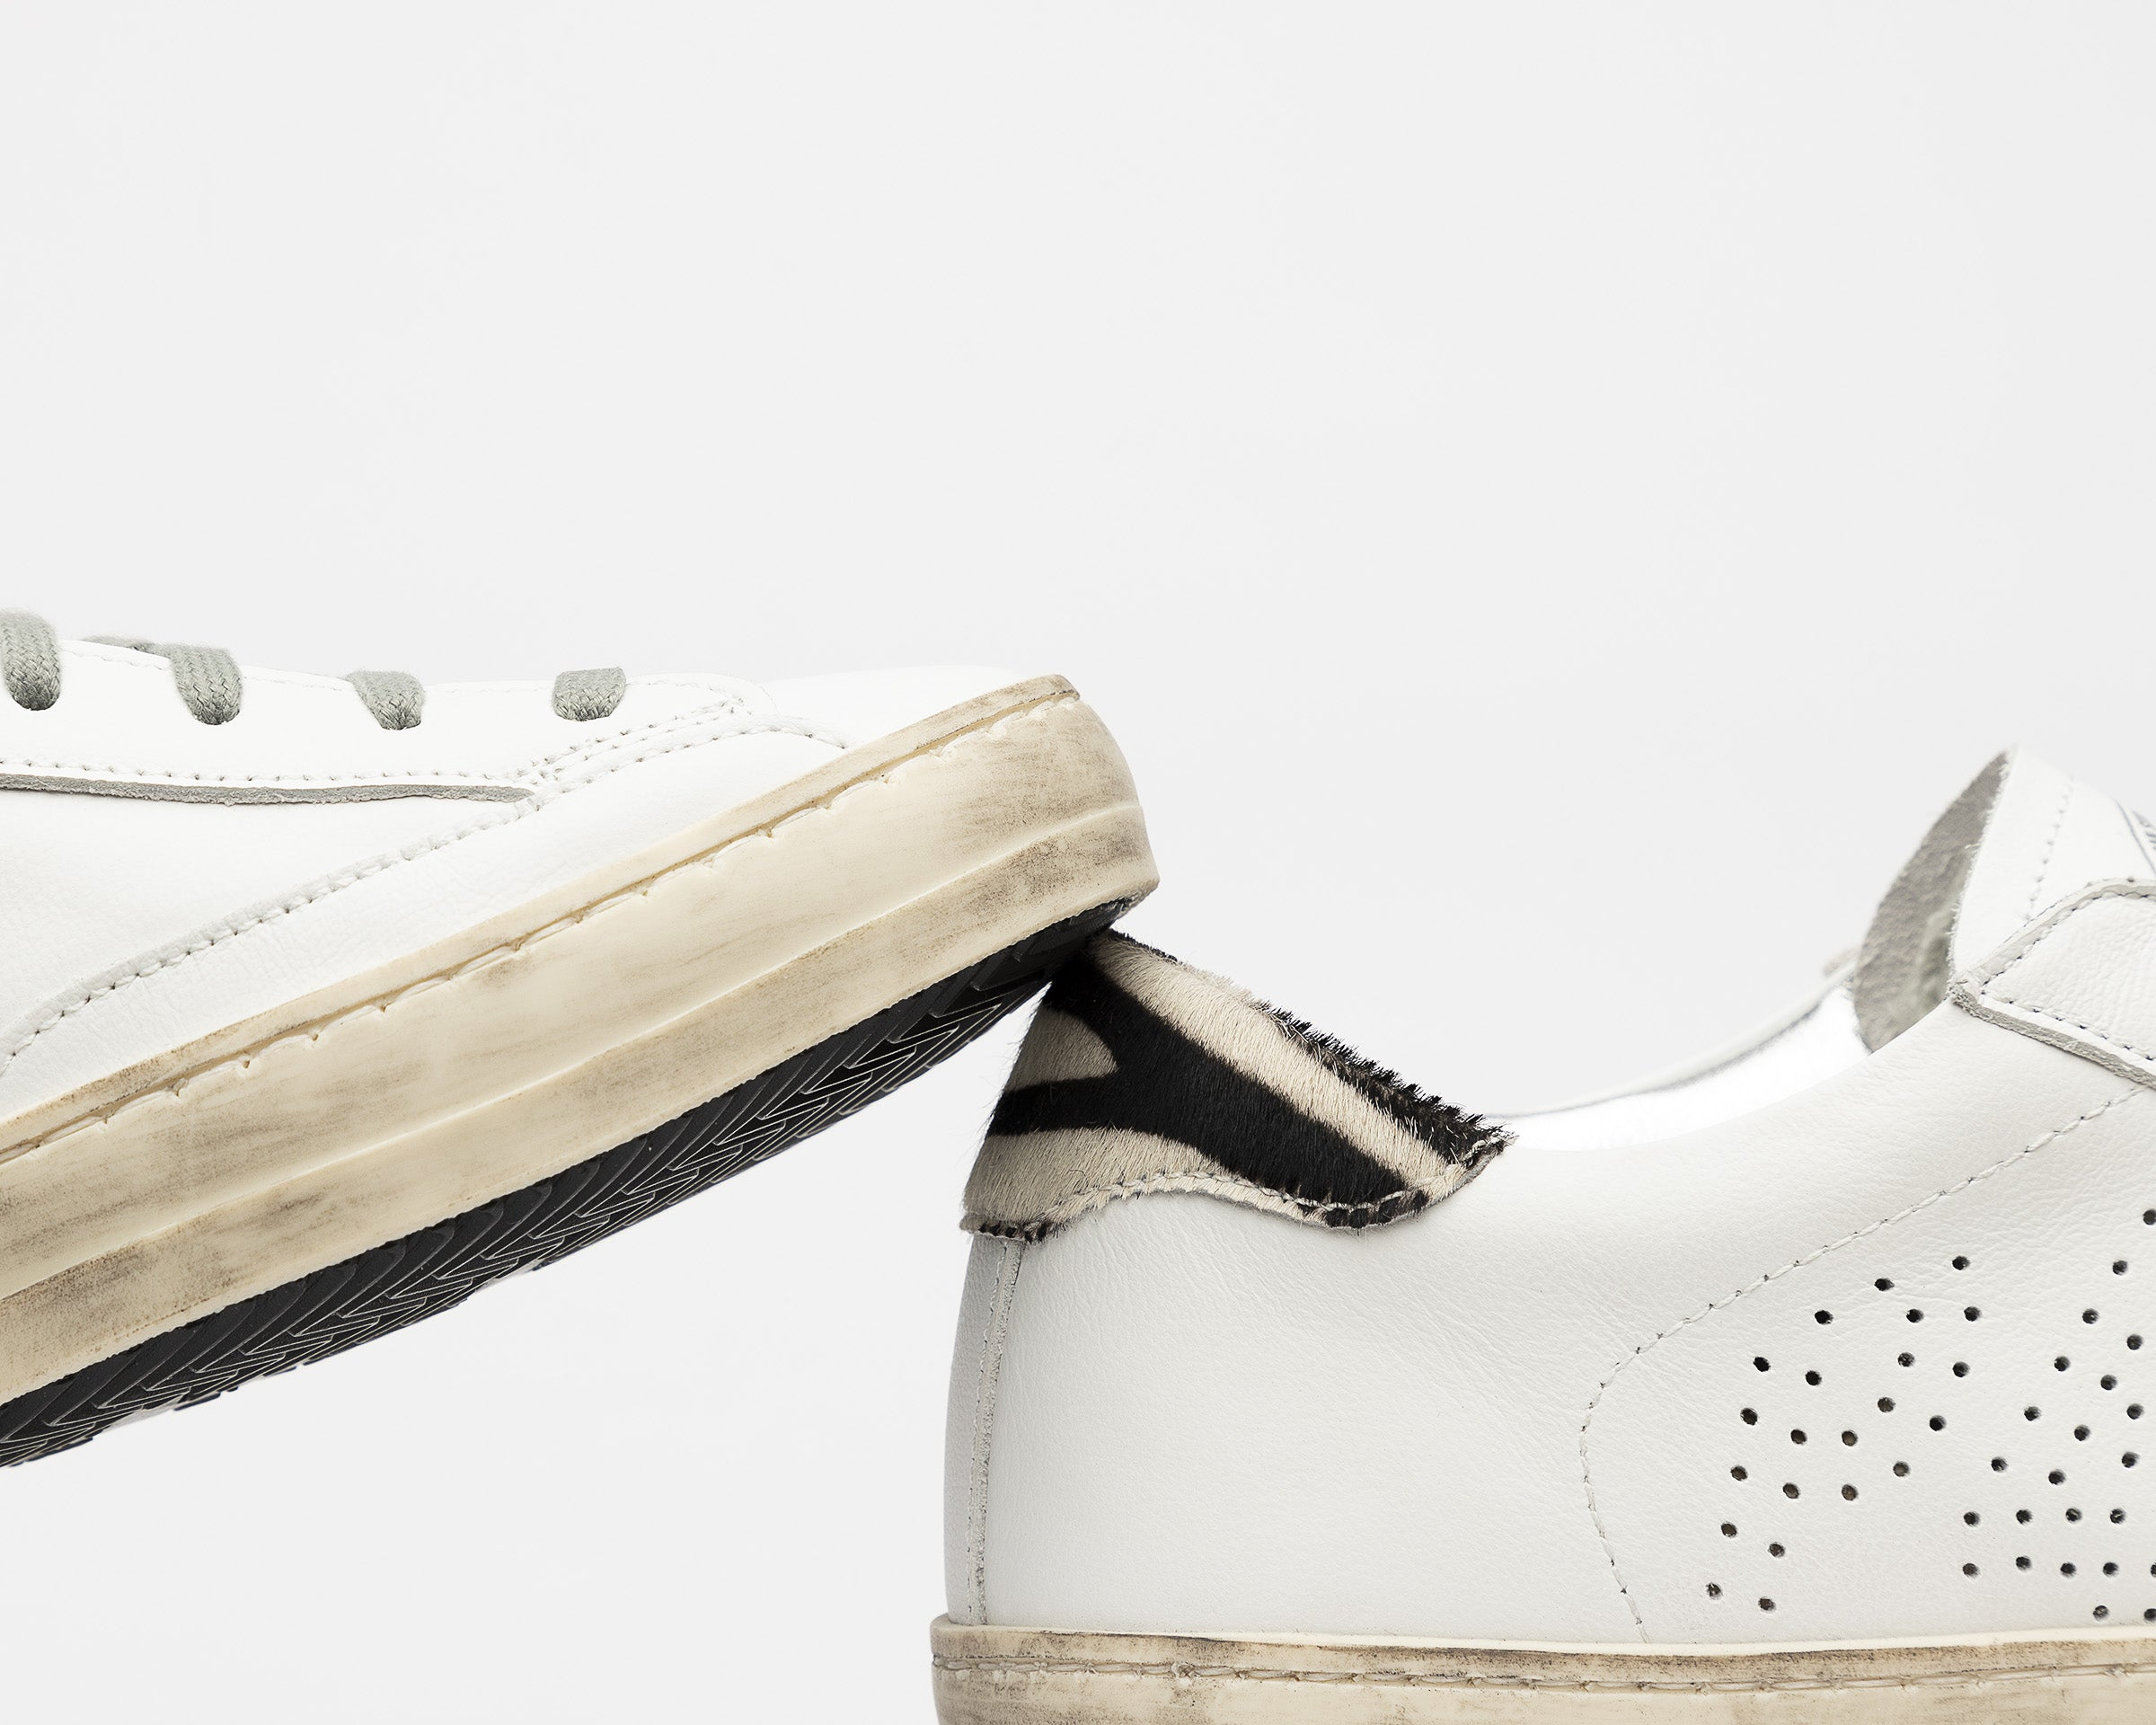 John Low-Top Sneaker in White/CZebJohn Low-Top Sneaker in White/CZebra - Detail 2